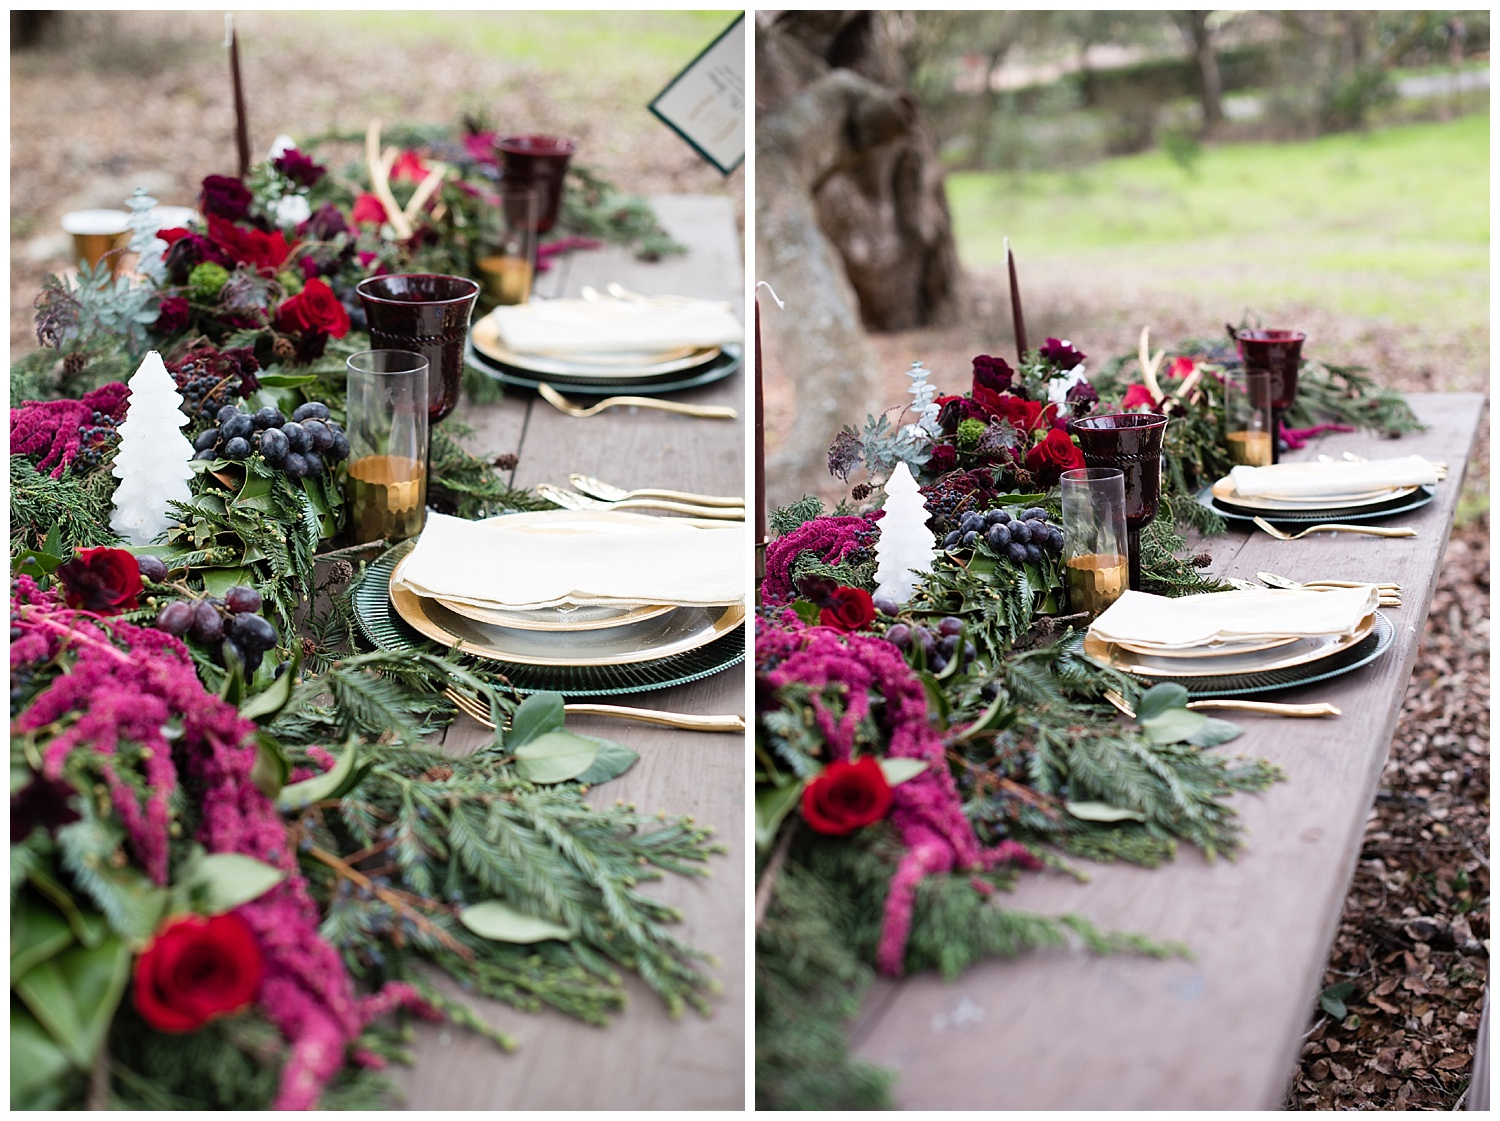 winter-wedding-holiday-table-setting.jpg